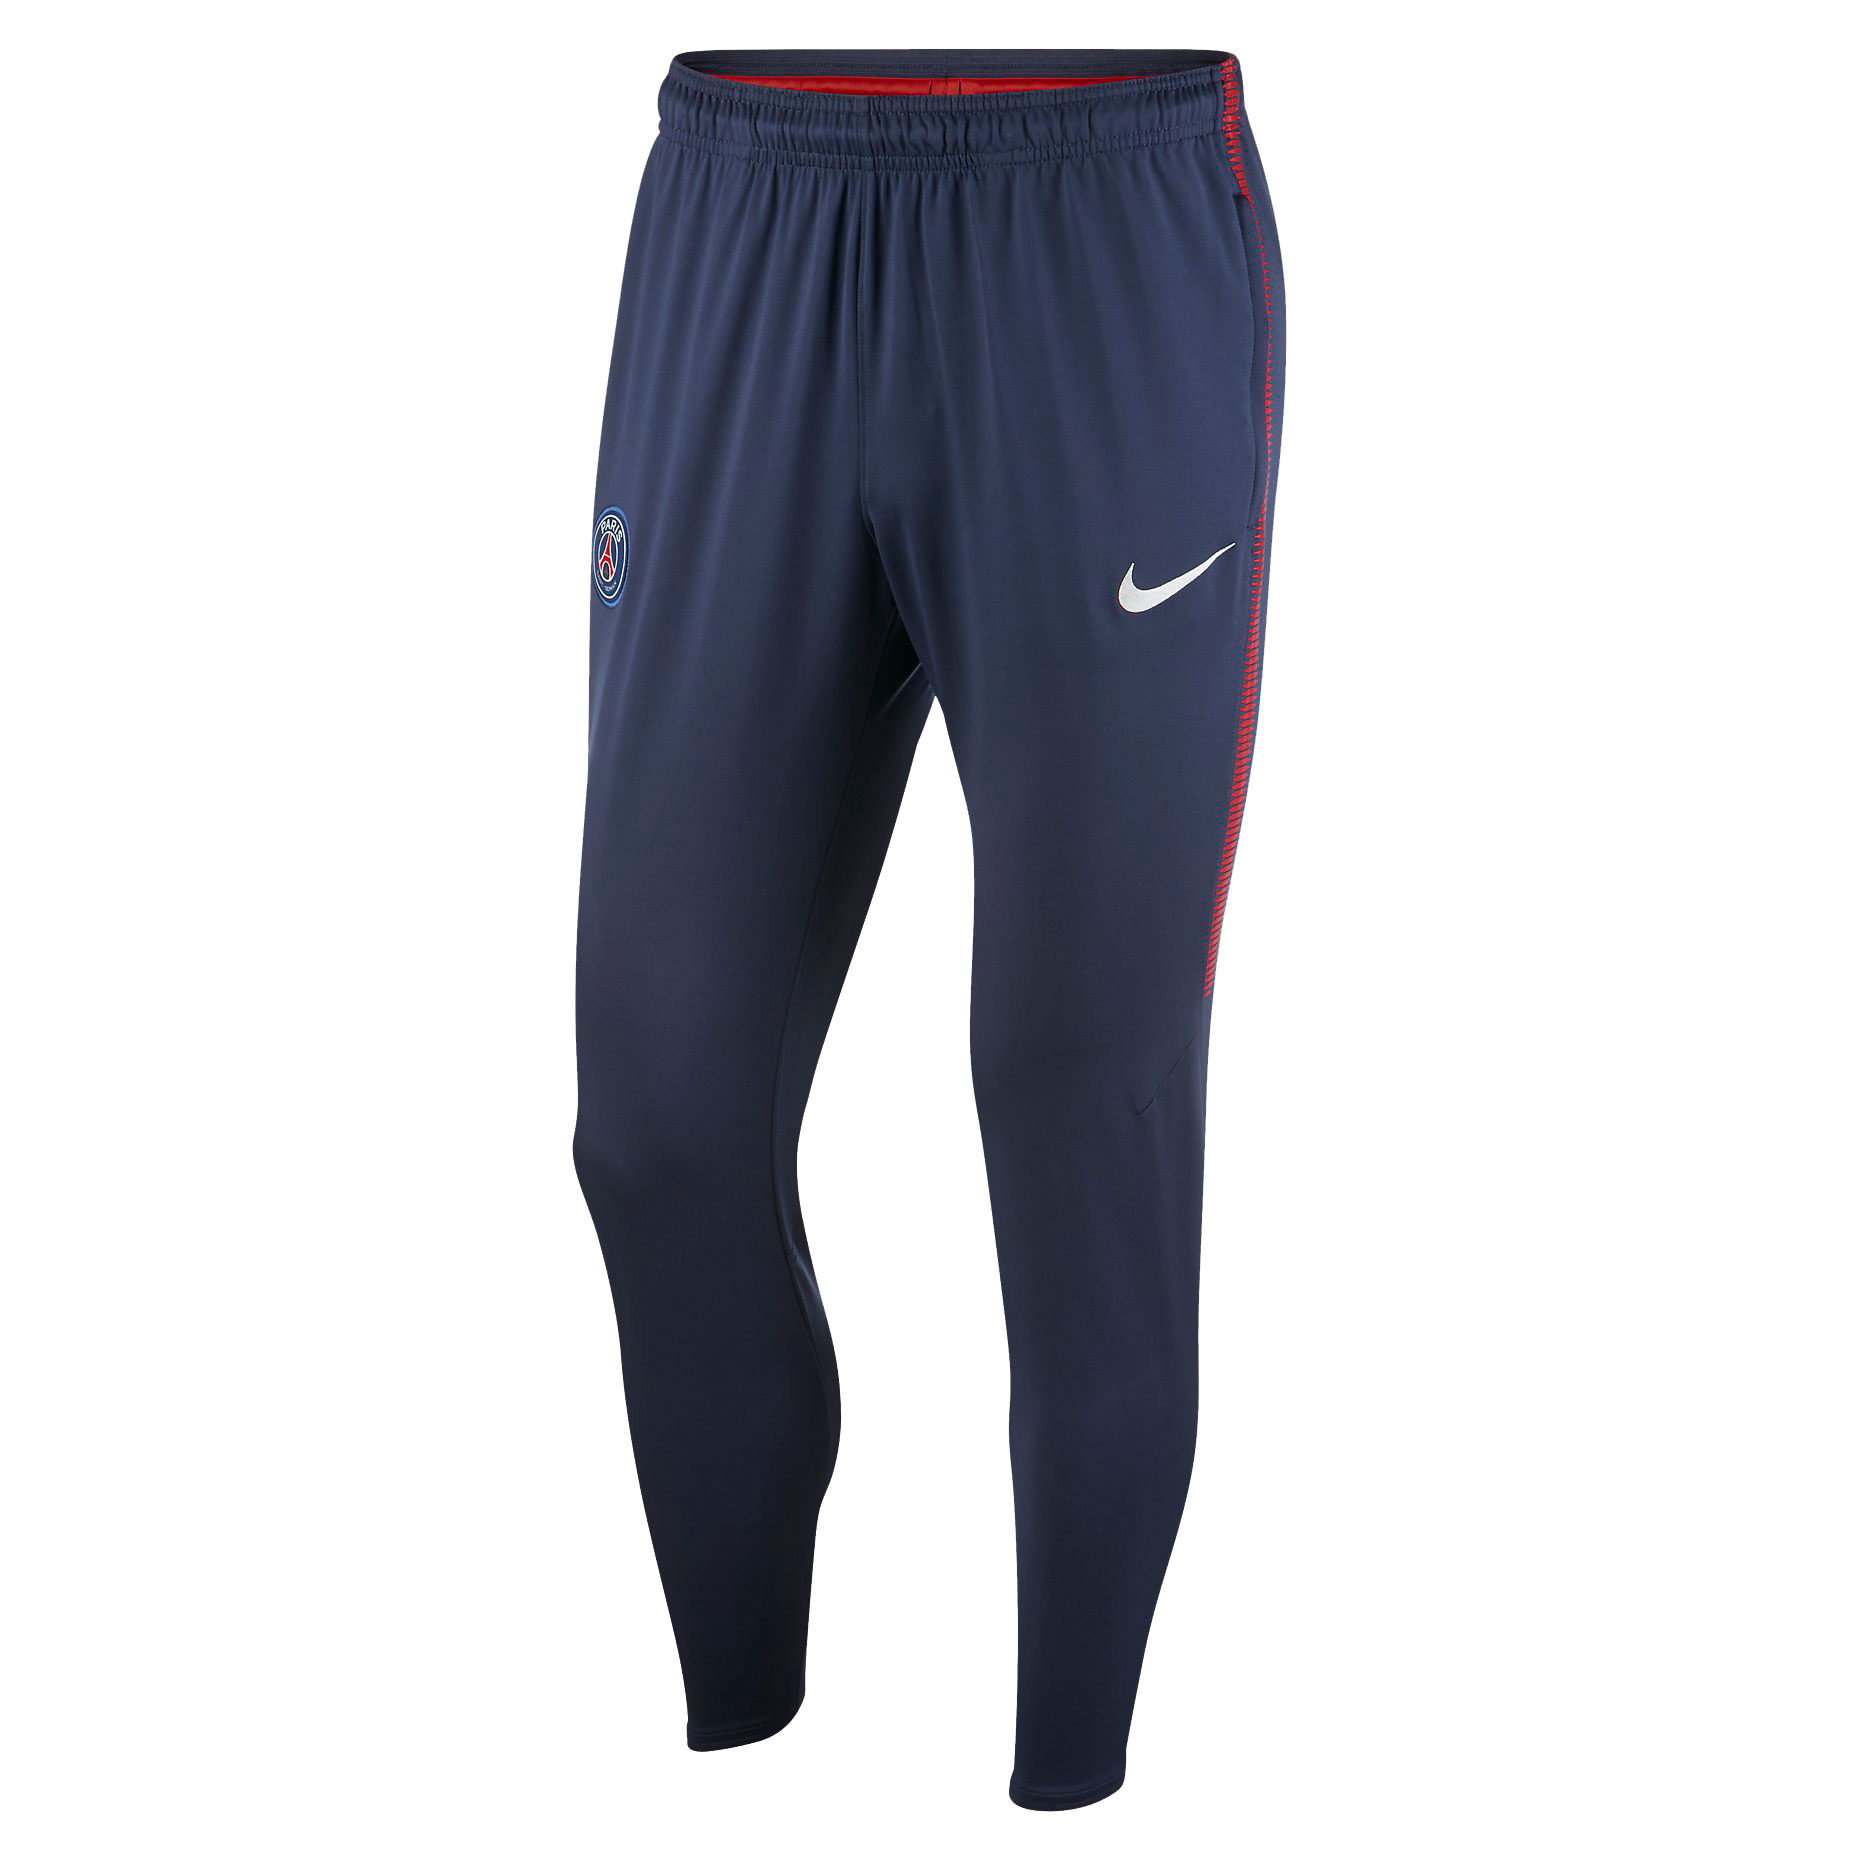 PSG Tech Training Pants 2017 / 2018 - Navy - S